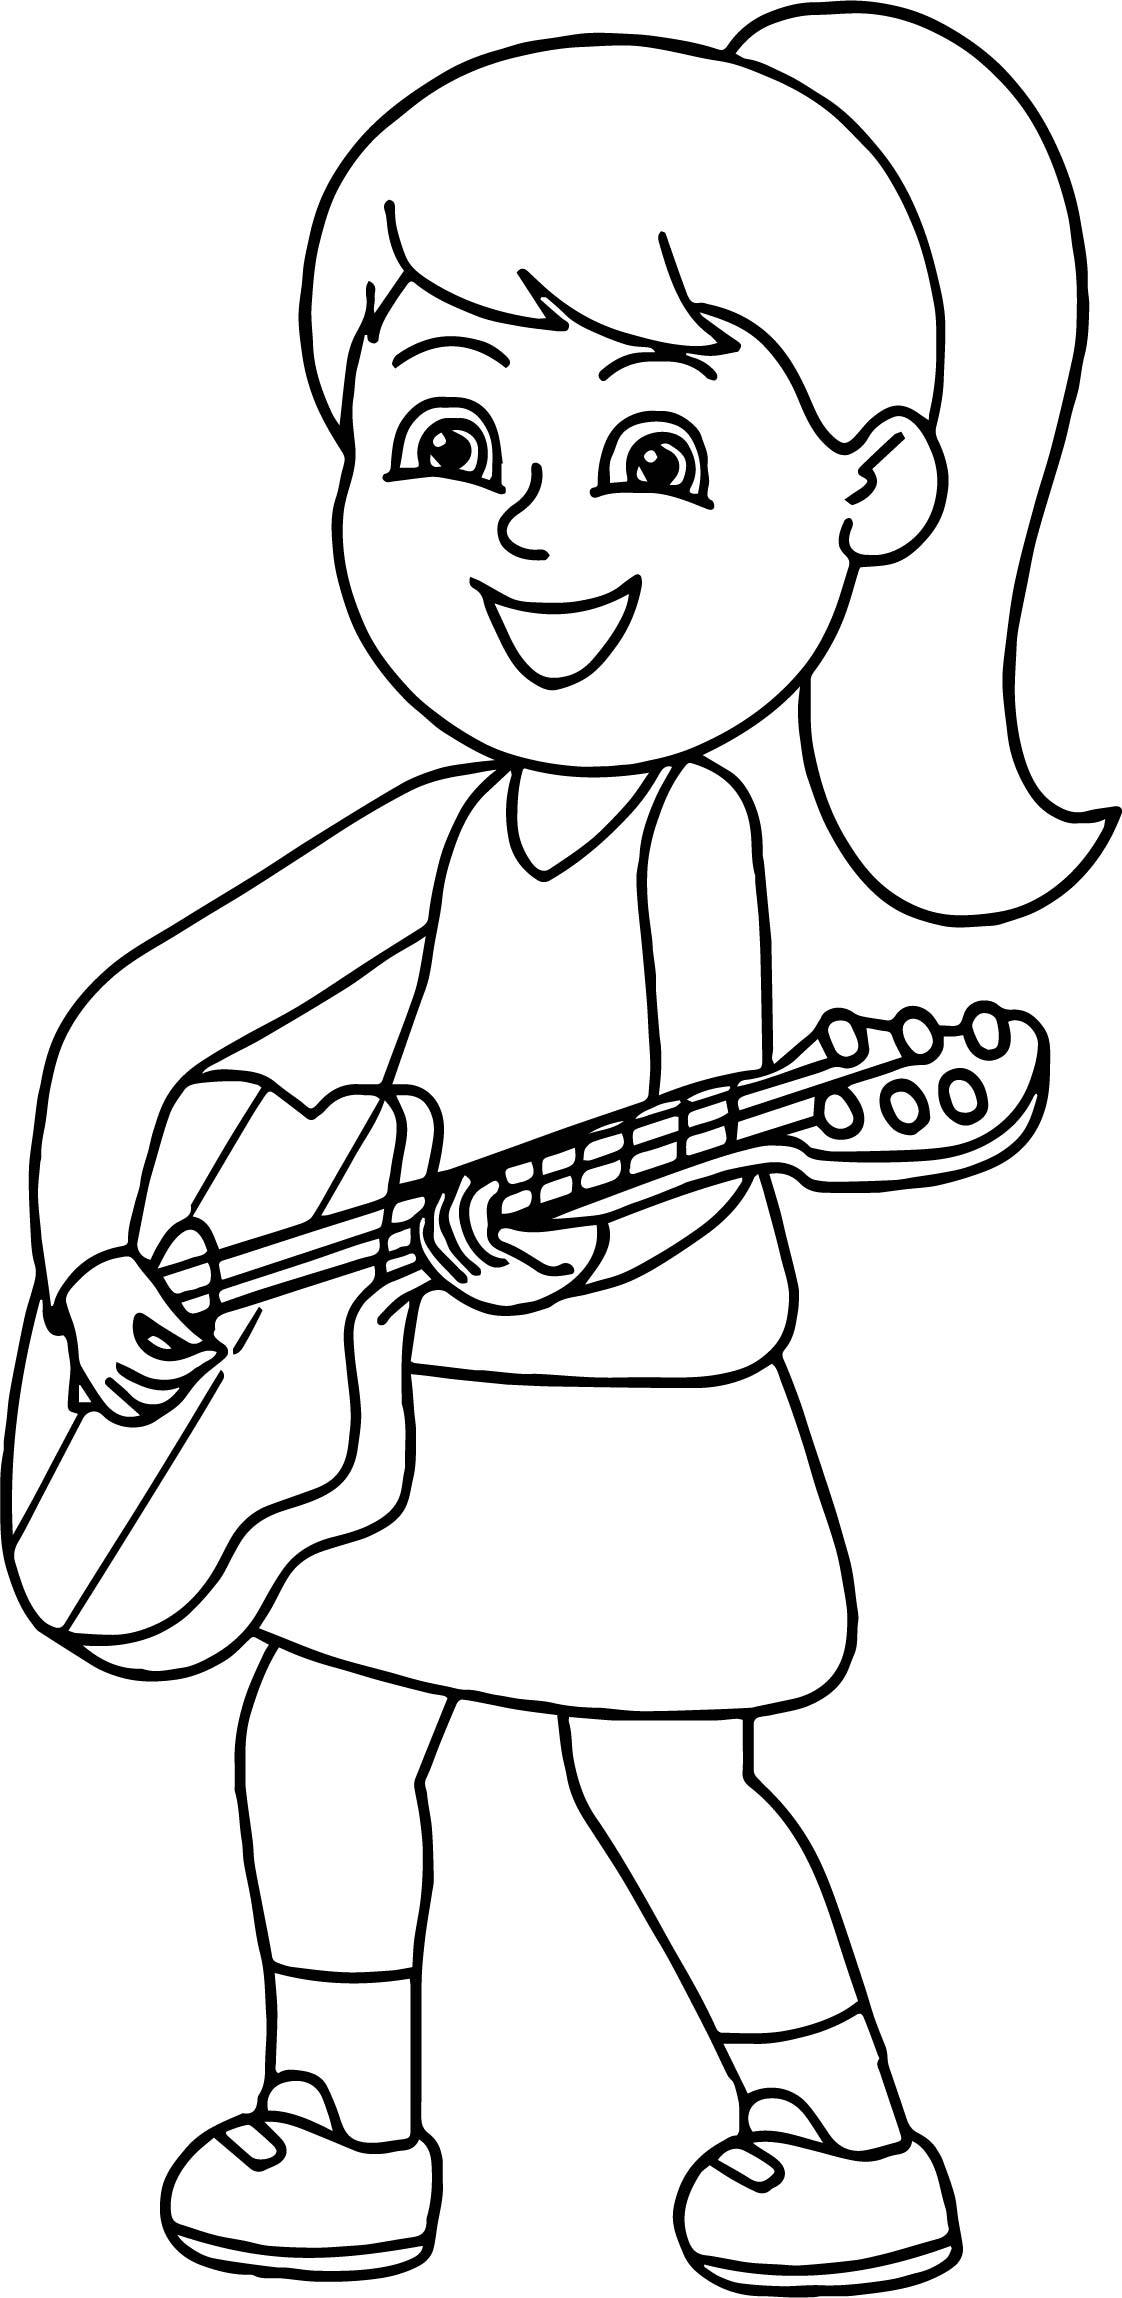 girl playing guitar playing the guitar coloring page - Guitar Coloring Pages